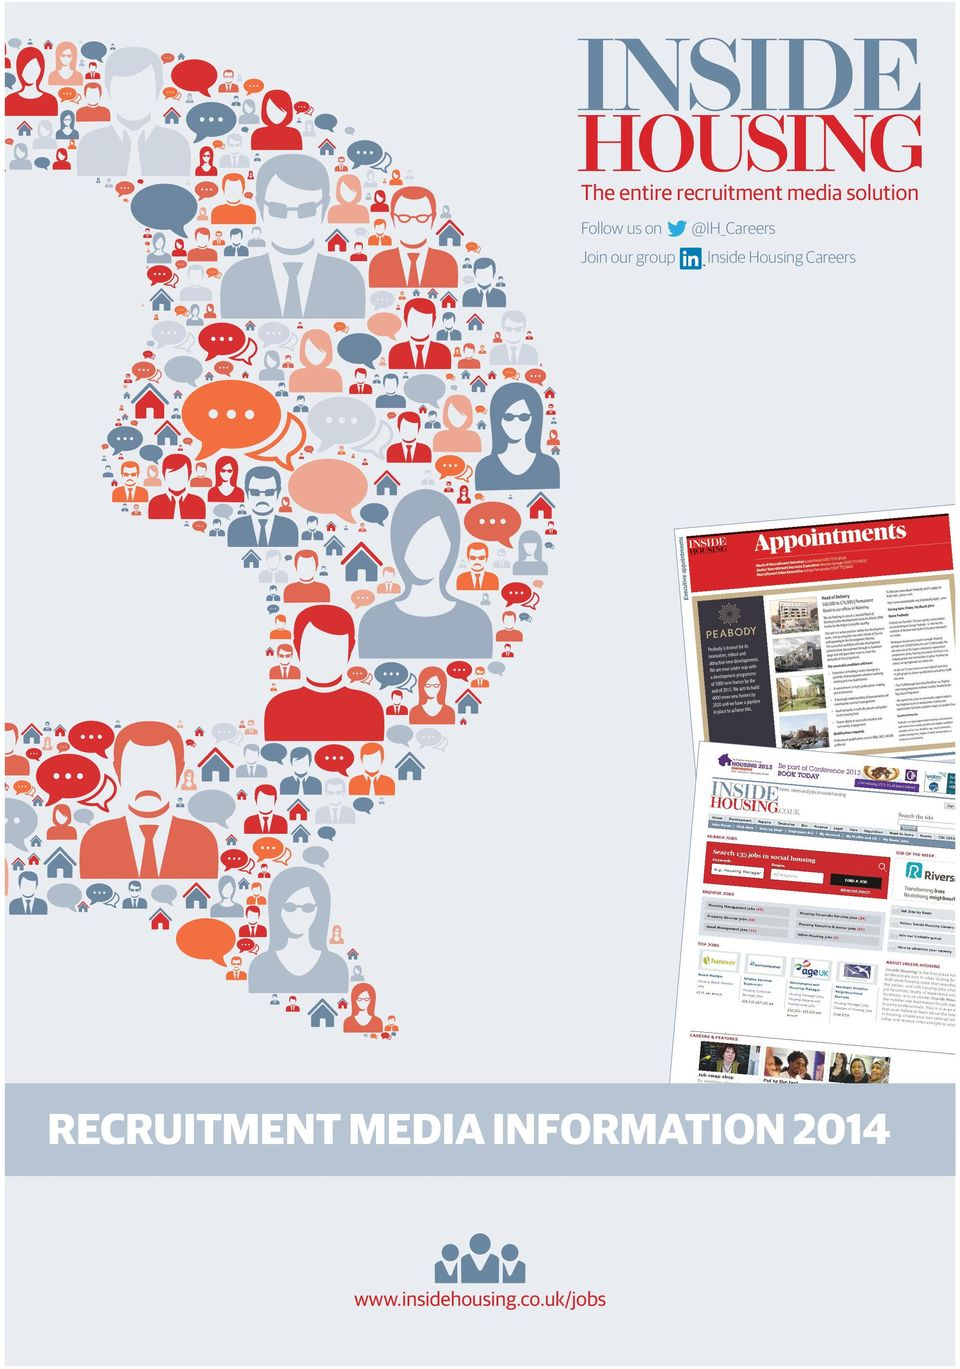 Inside Housing Careers RECRUITMENT MEDIA